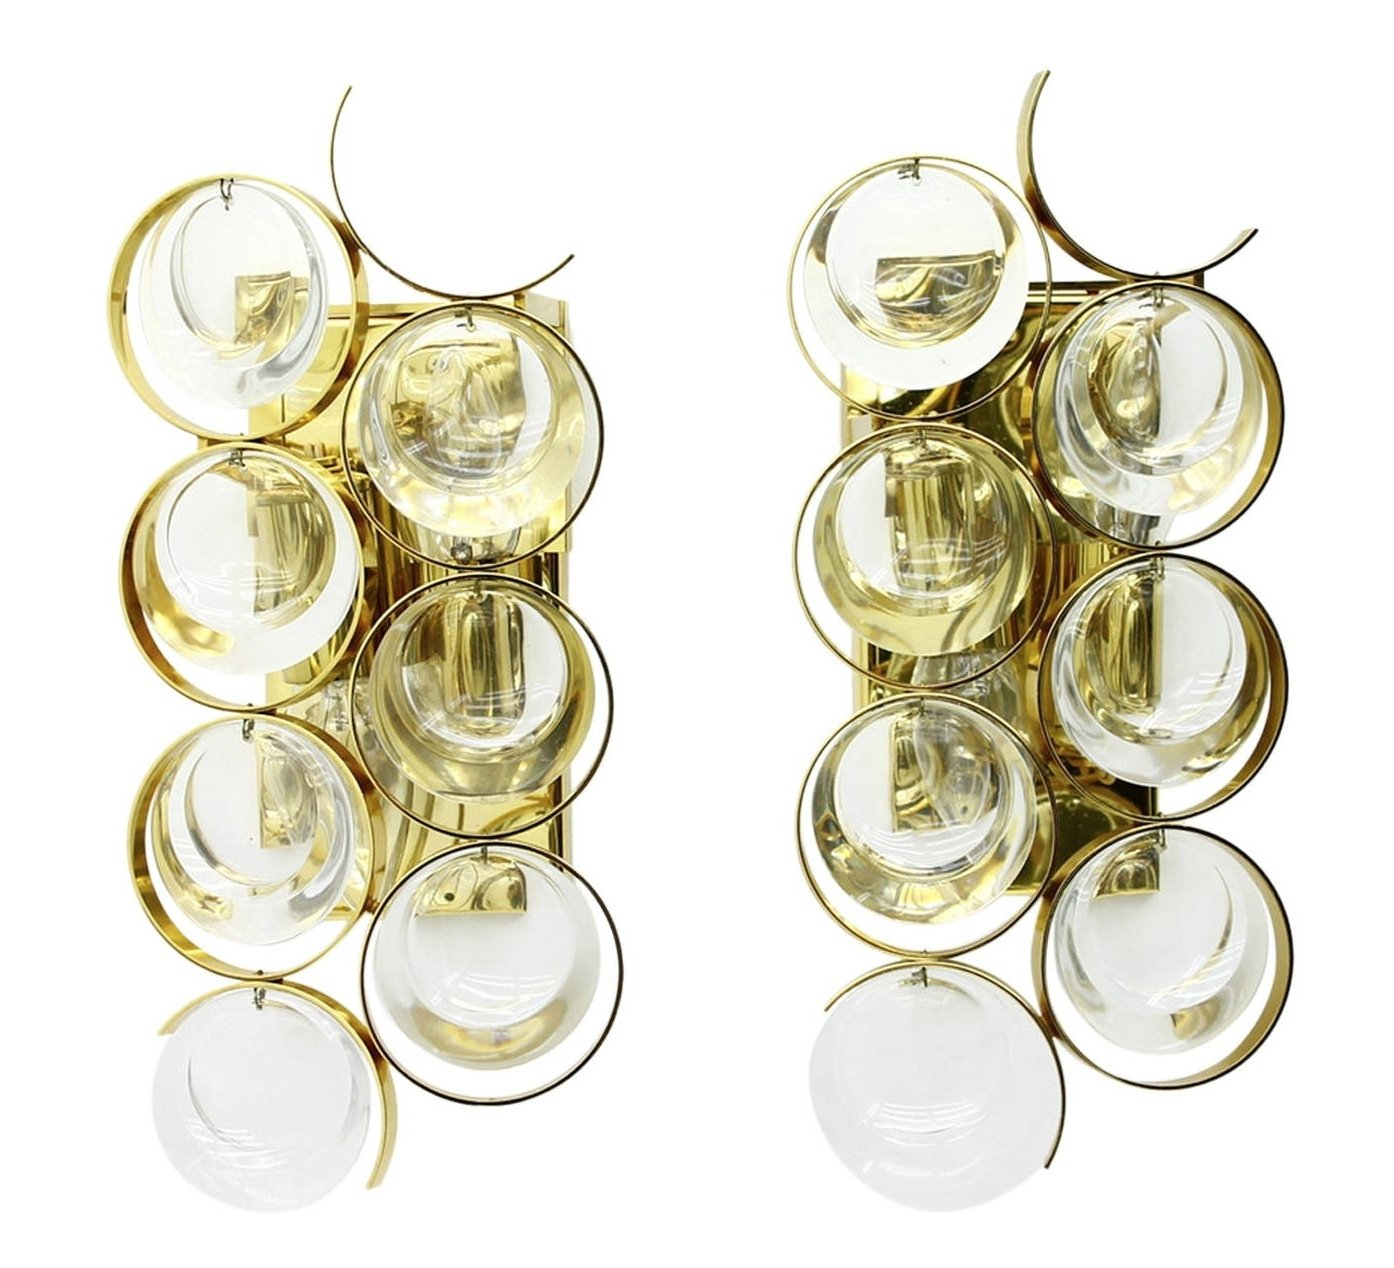 Wall Sconces Set Of 2 : Set of 2 Gilded wall sconces wall lamps from the sixties by Unknown Designer for Palwa #64099